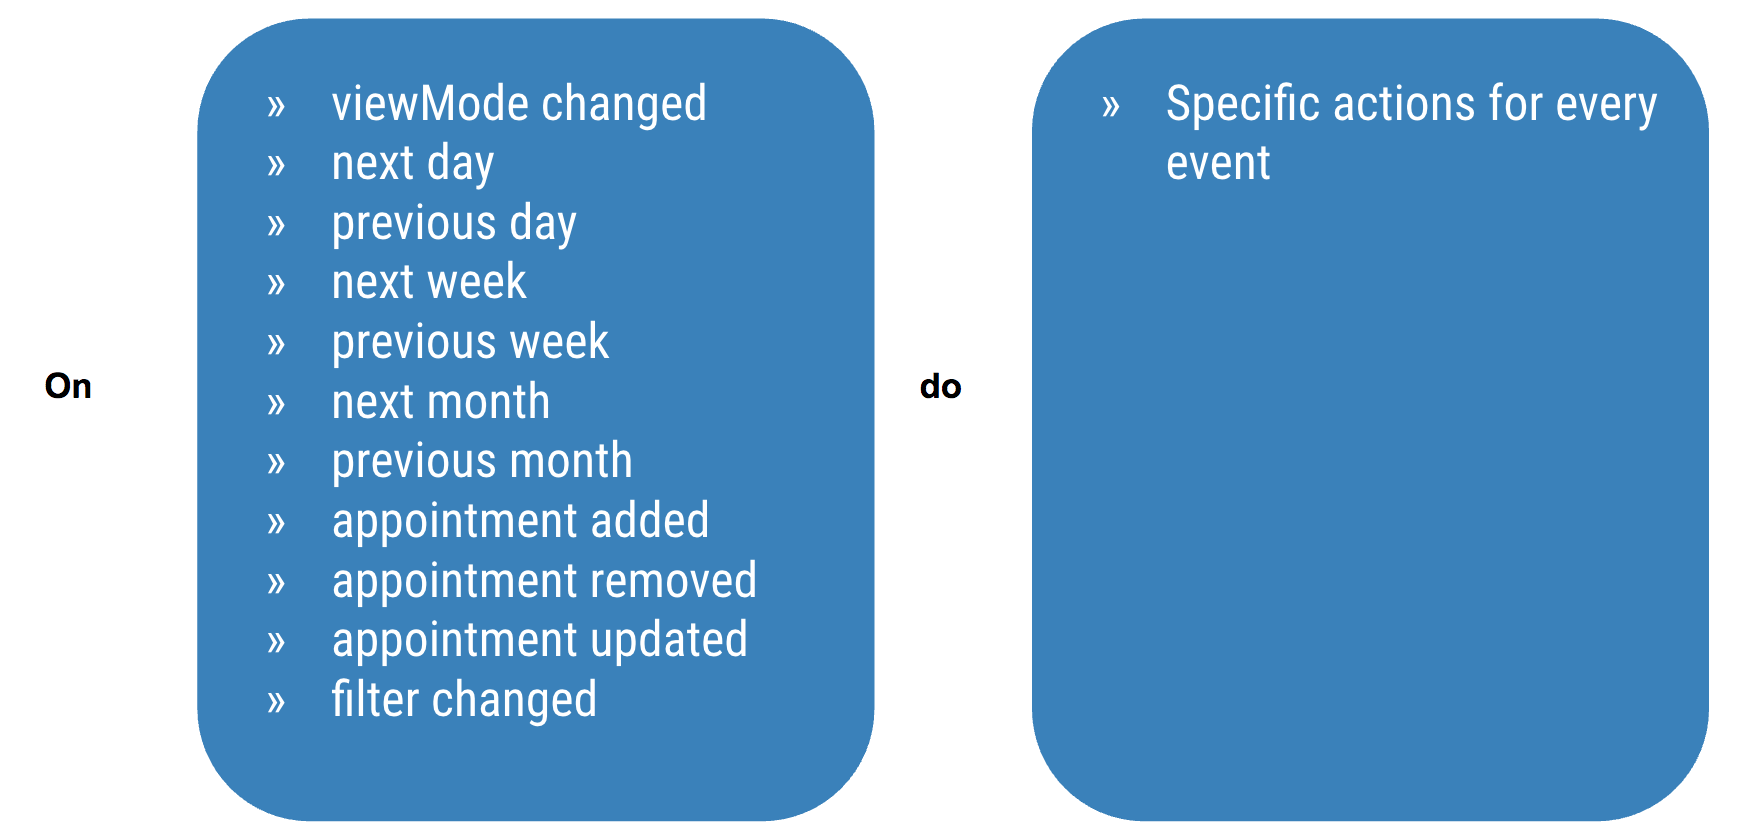 Application events